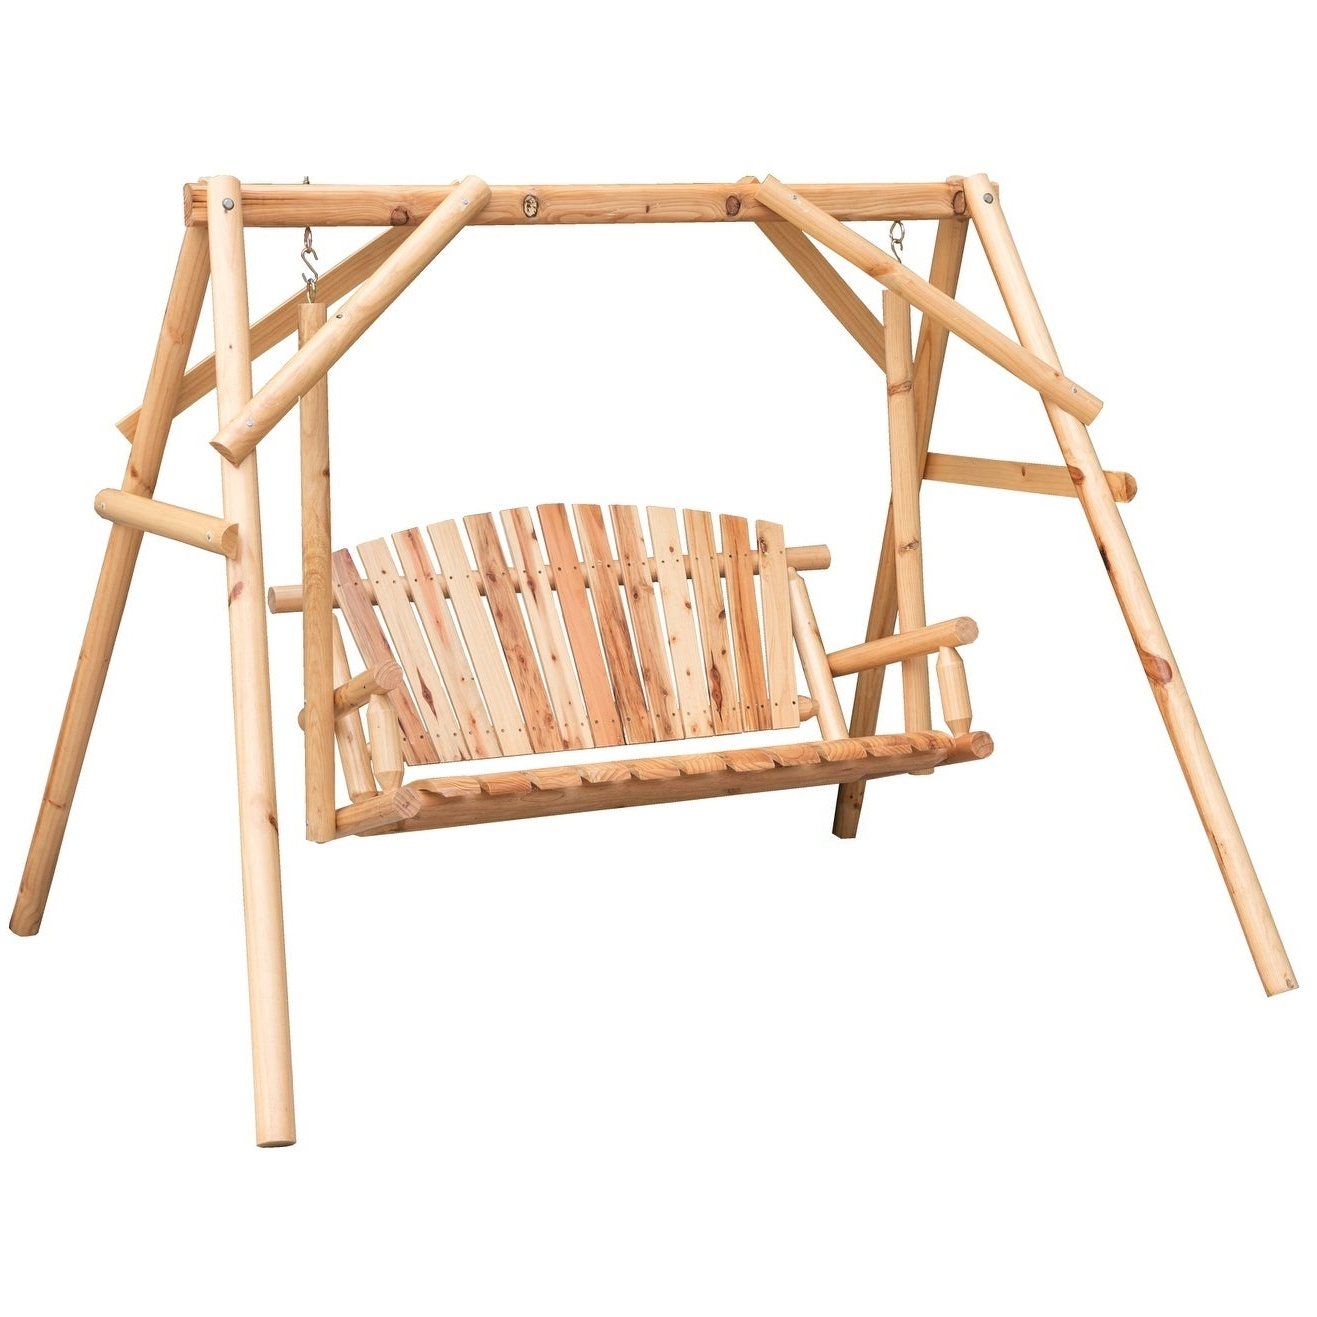 Newest 2 Person Light Teak Oil Wood Outdoor Swings Throughout Wooden A Frame 2 Person Outdoor Porch Patio Swing Log Wood Chair Bench (View 6 of 25)